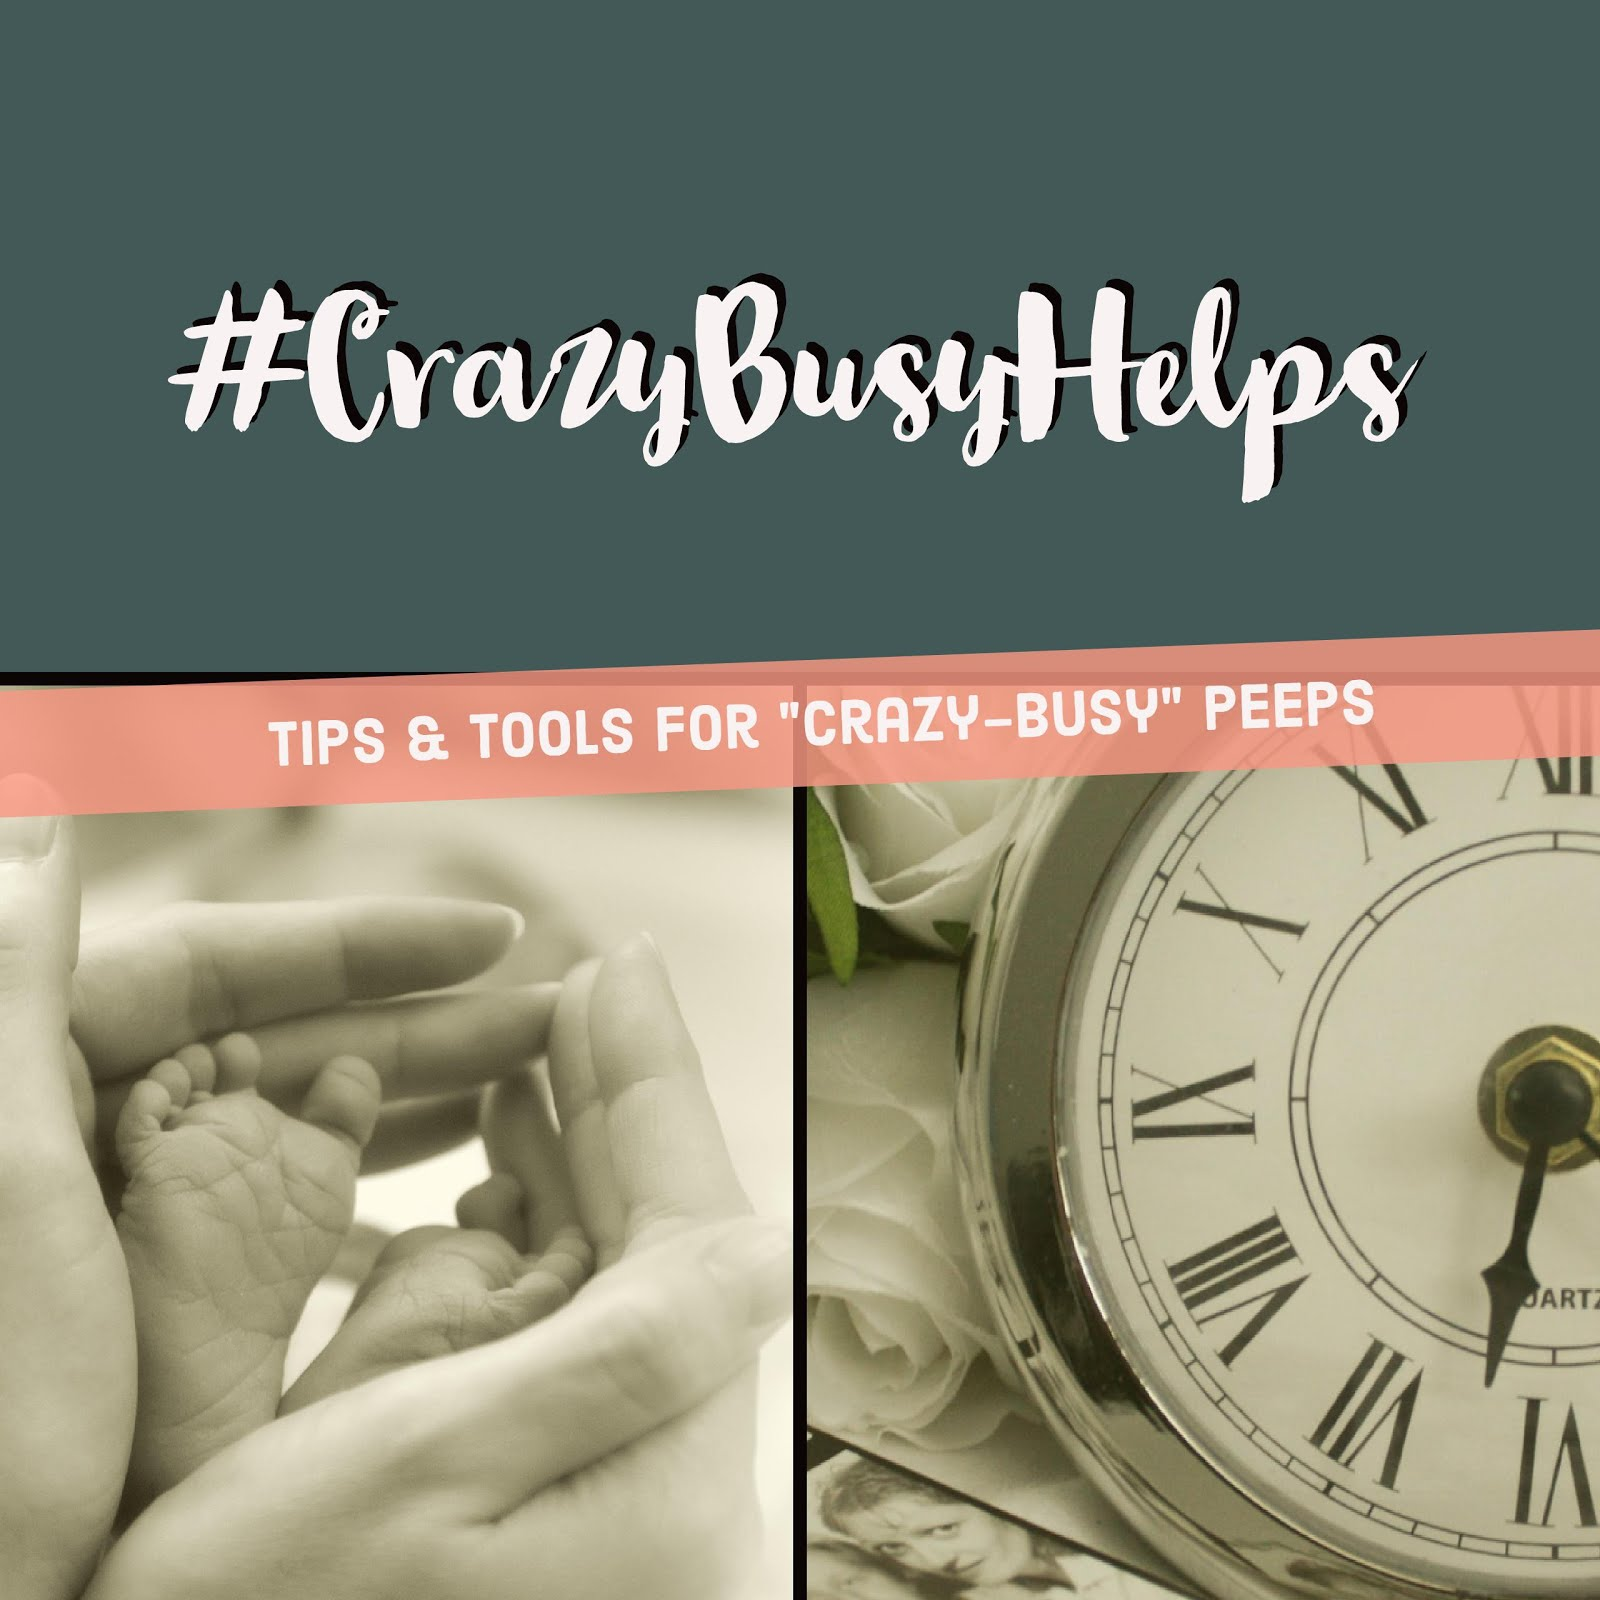 Crazy-busy Helps Series